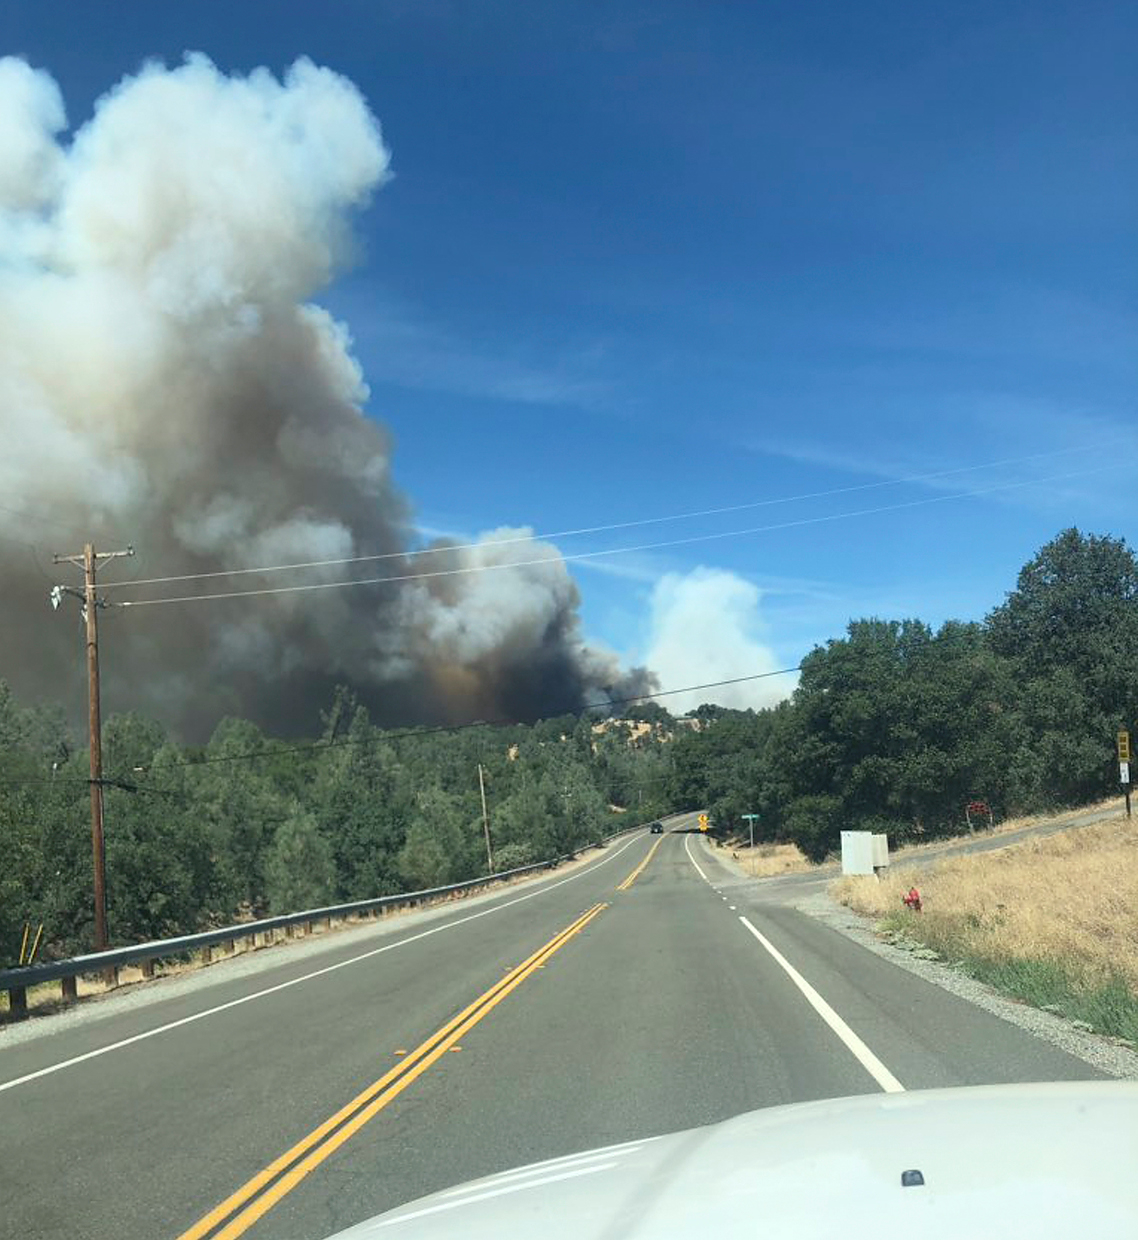 Firefighters Battle Mountain Fire In Shasta County Pertaining To Shasta County Court Schedule